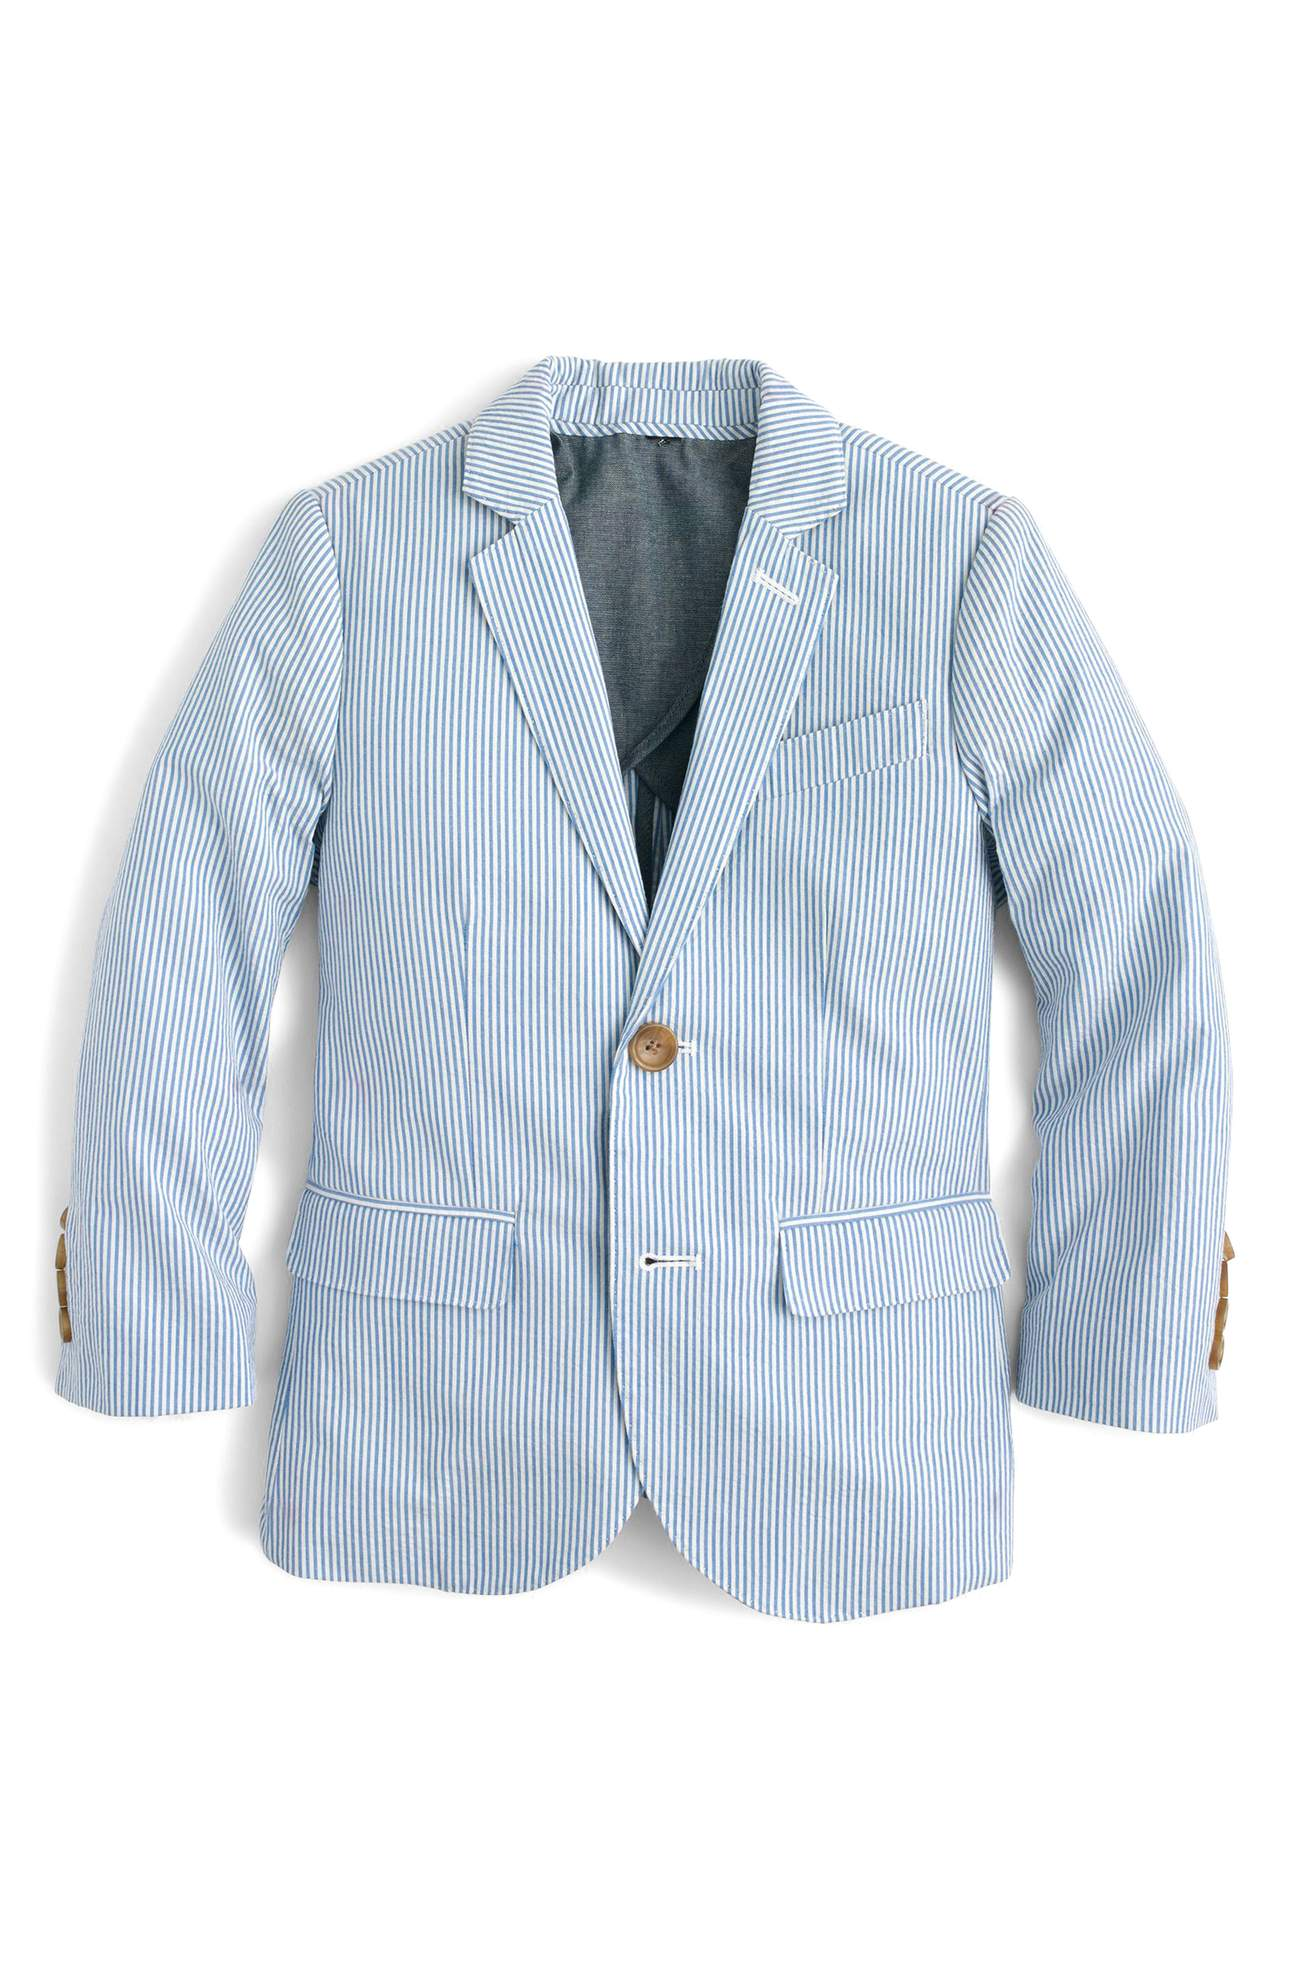 This little jacket is a great investment for your little guy.{ } Crisp and lightweight seersucker cotton distinguishes a handsome suit jacket tailored in a classic fit. Wear it all Spring and Summer long! Price: $138 at Nordstrom. (Image: Nordstrom)